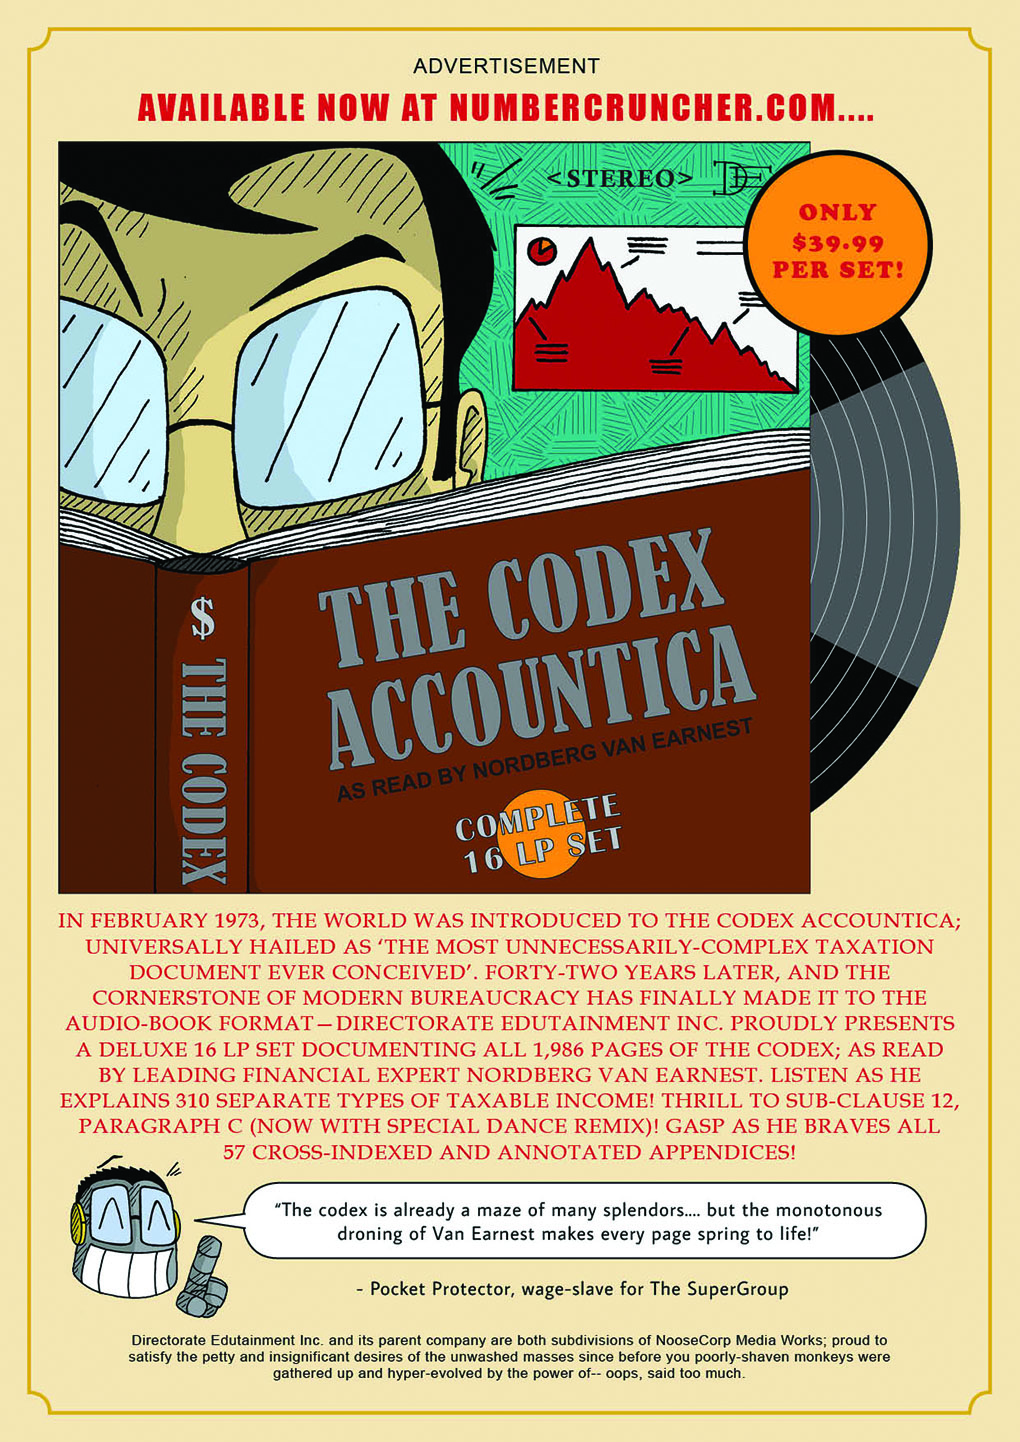 The Codex Accountica....